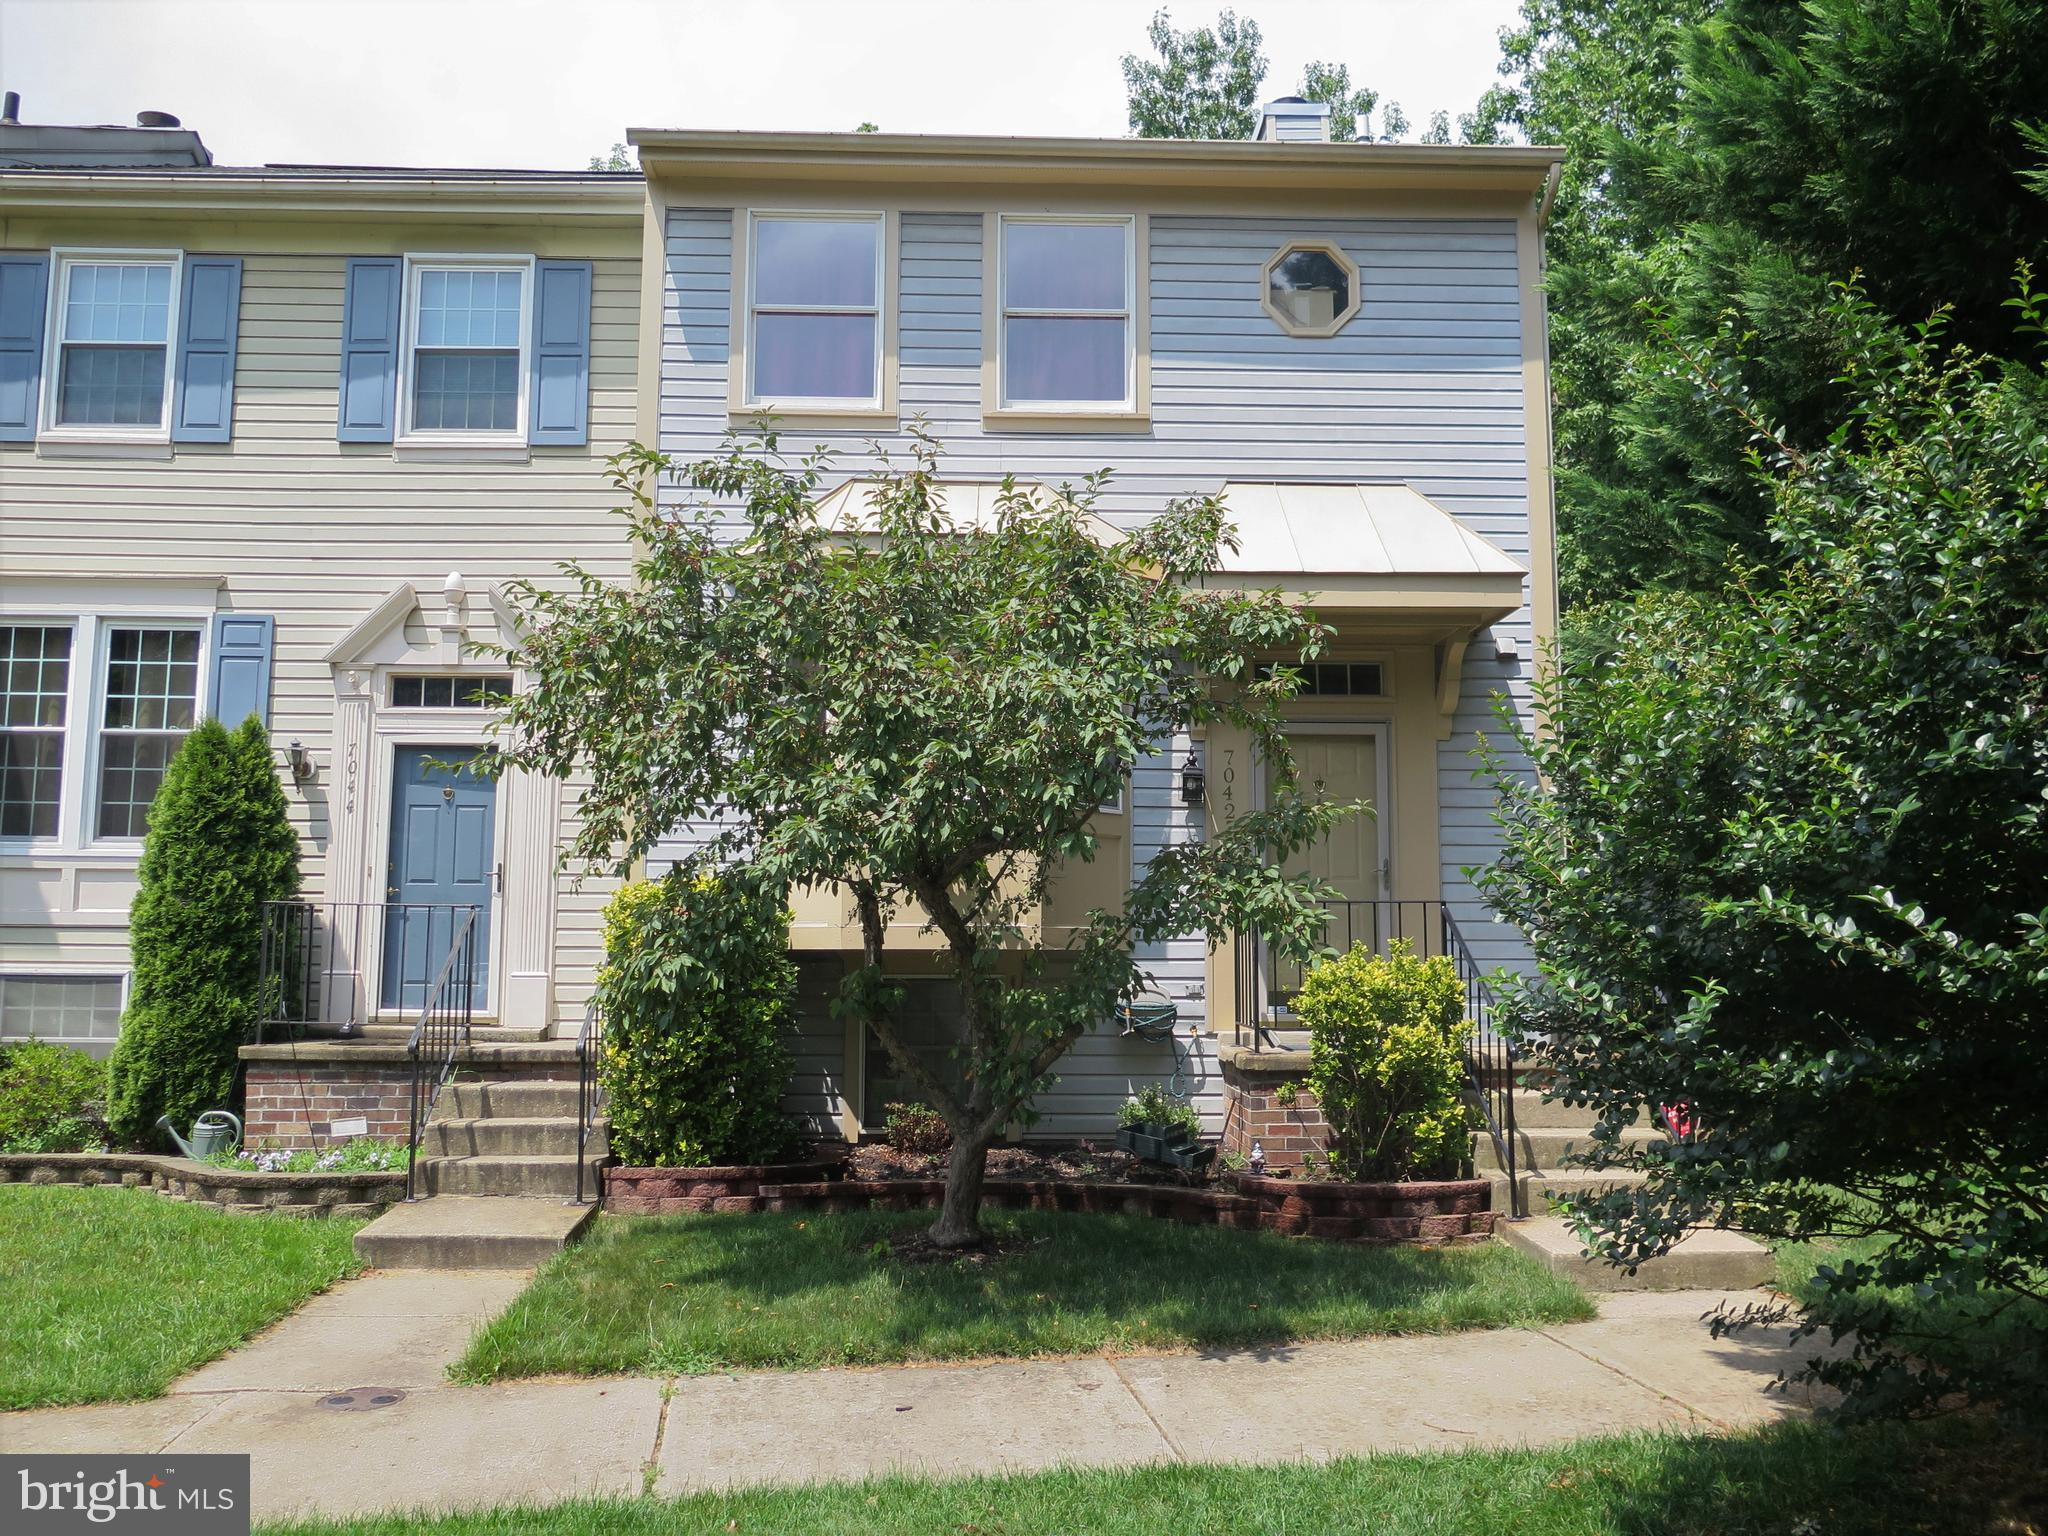 7042 TIMBERFIELD PLACE, CHESTNUT HILL COVE, MD 21226